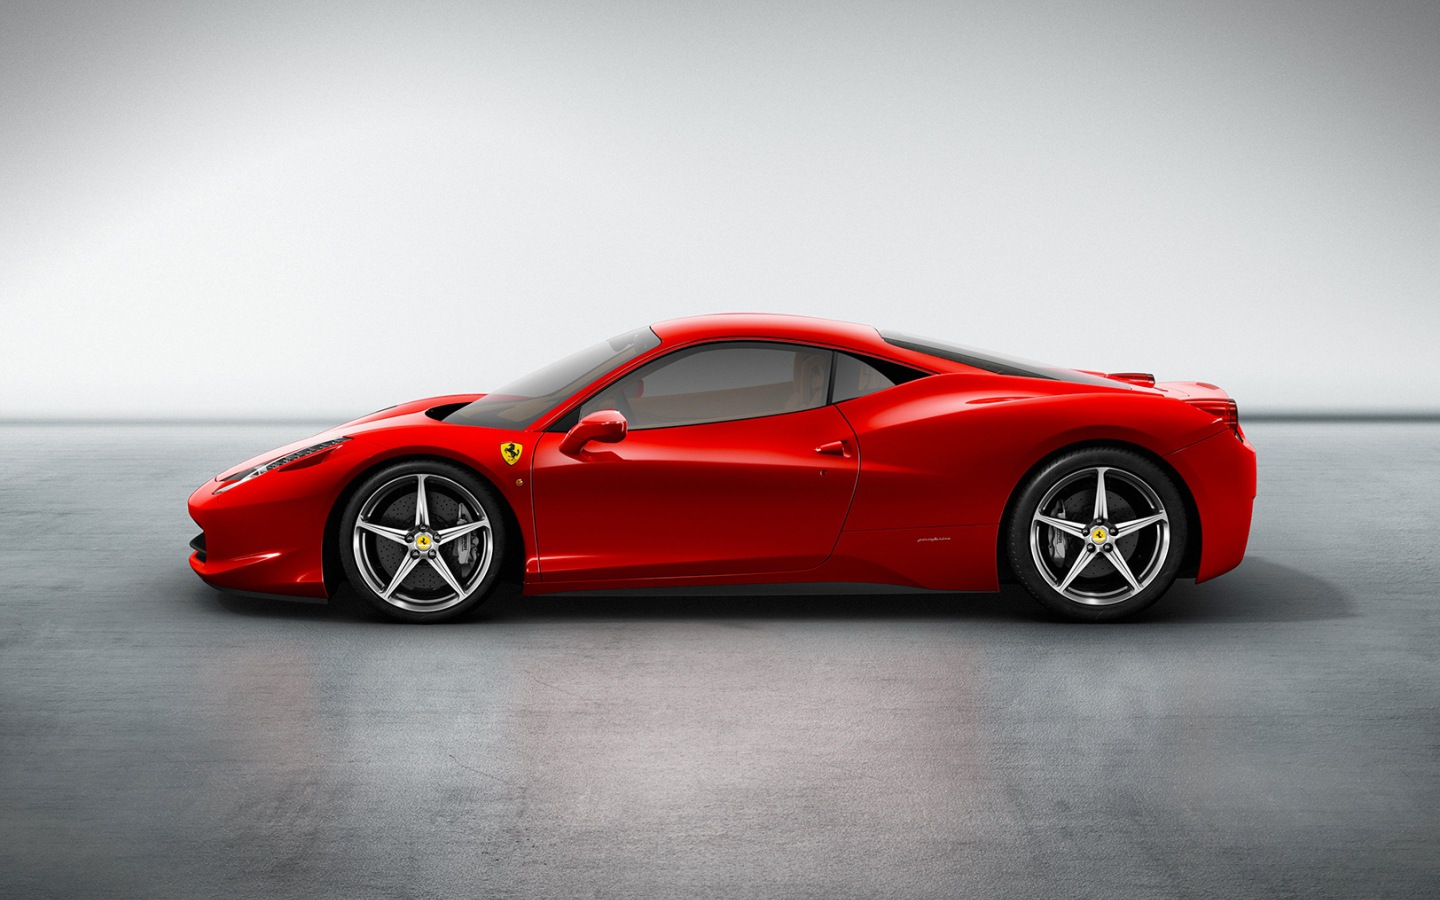 Ferrari 458 Italia Wallpaper Supercar Wallpaper 1440x900